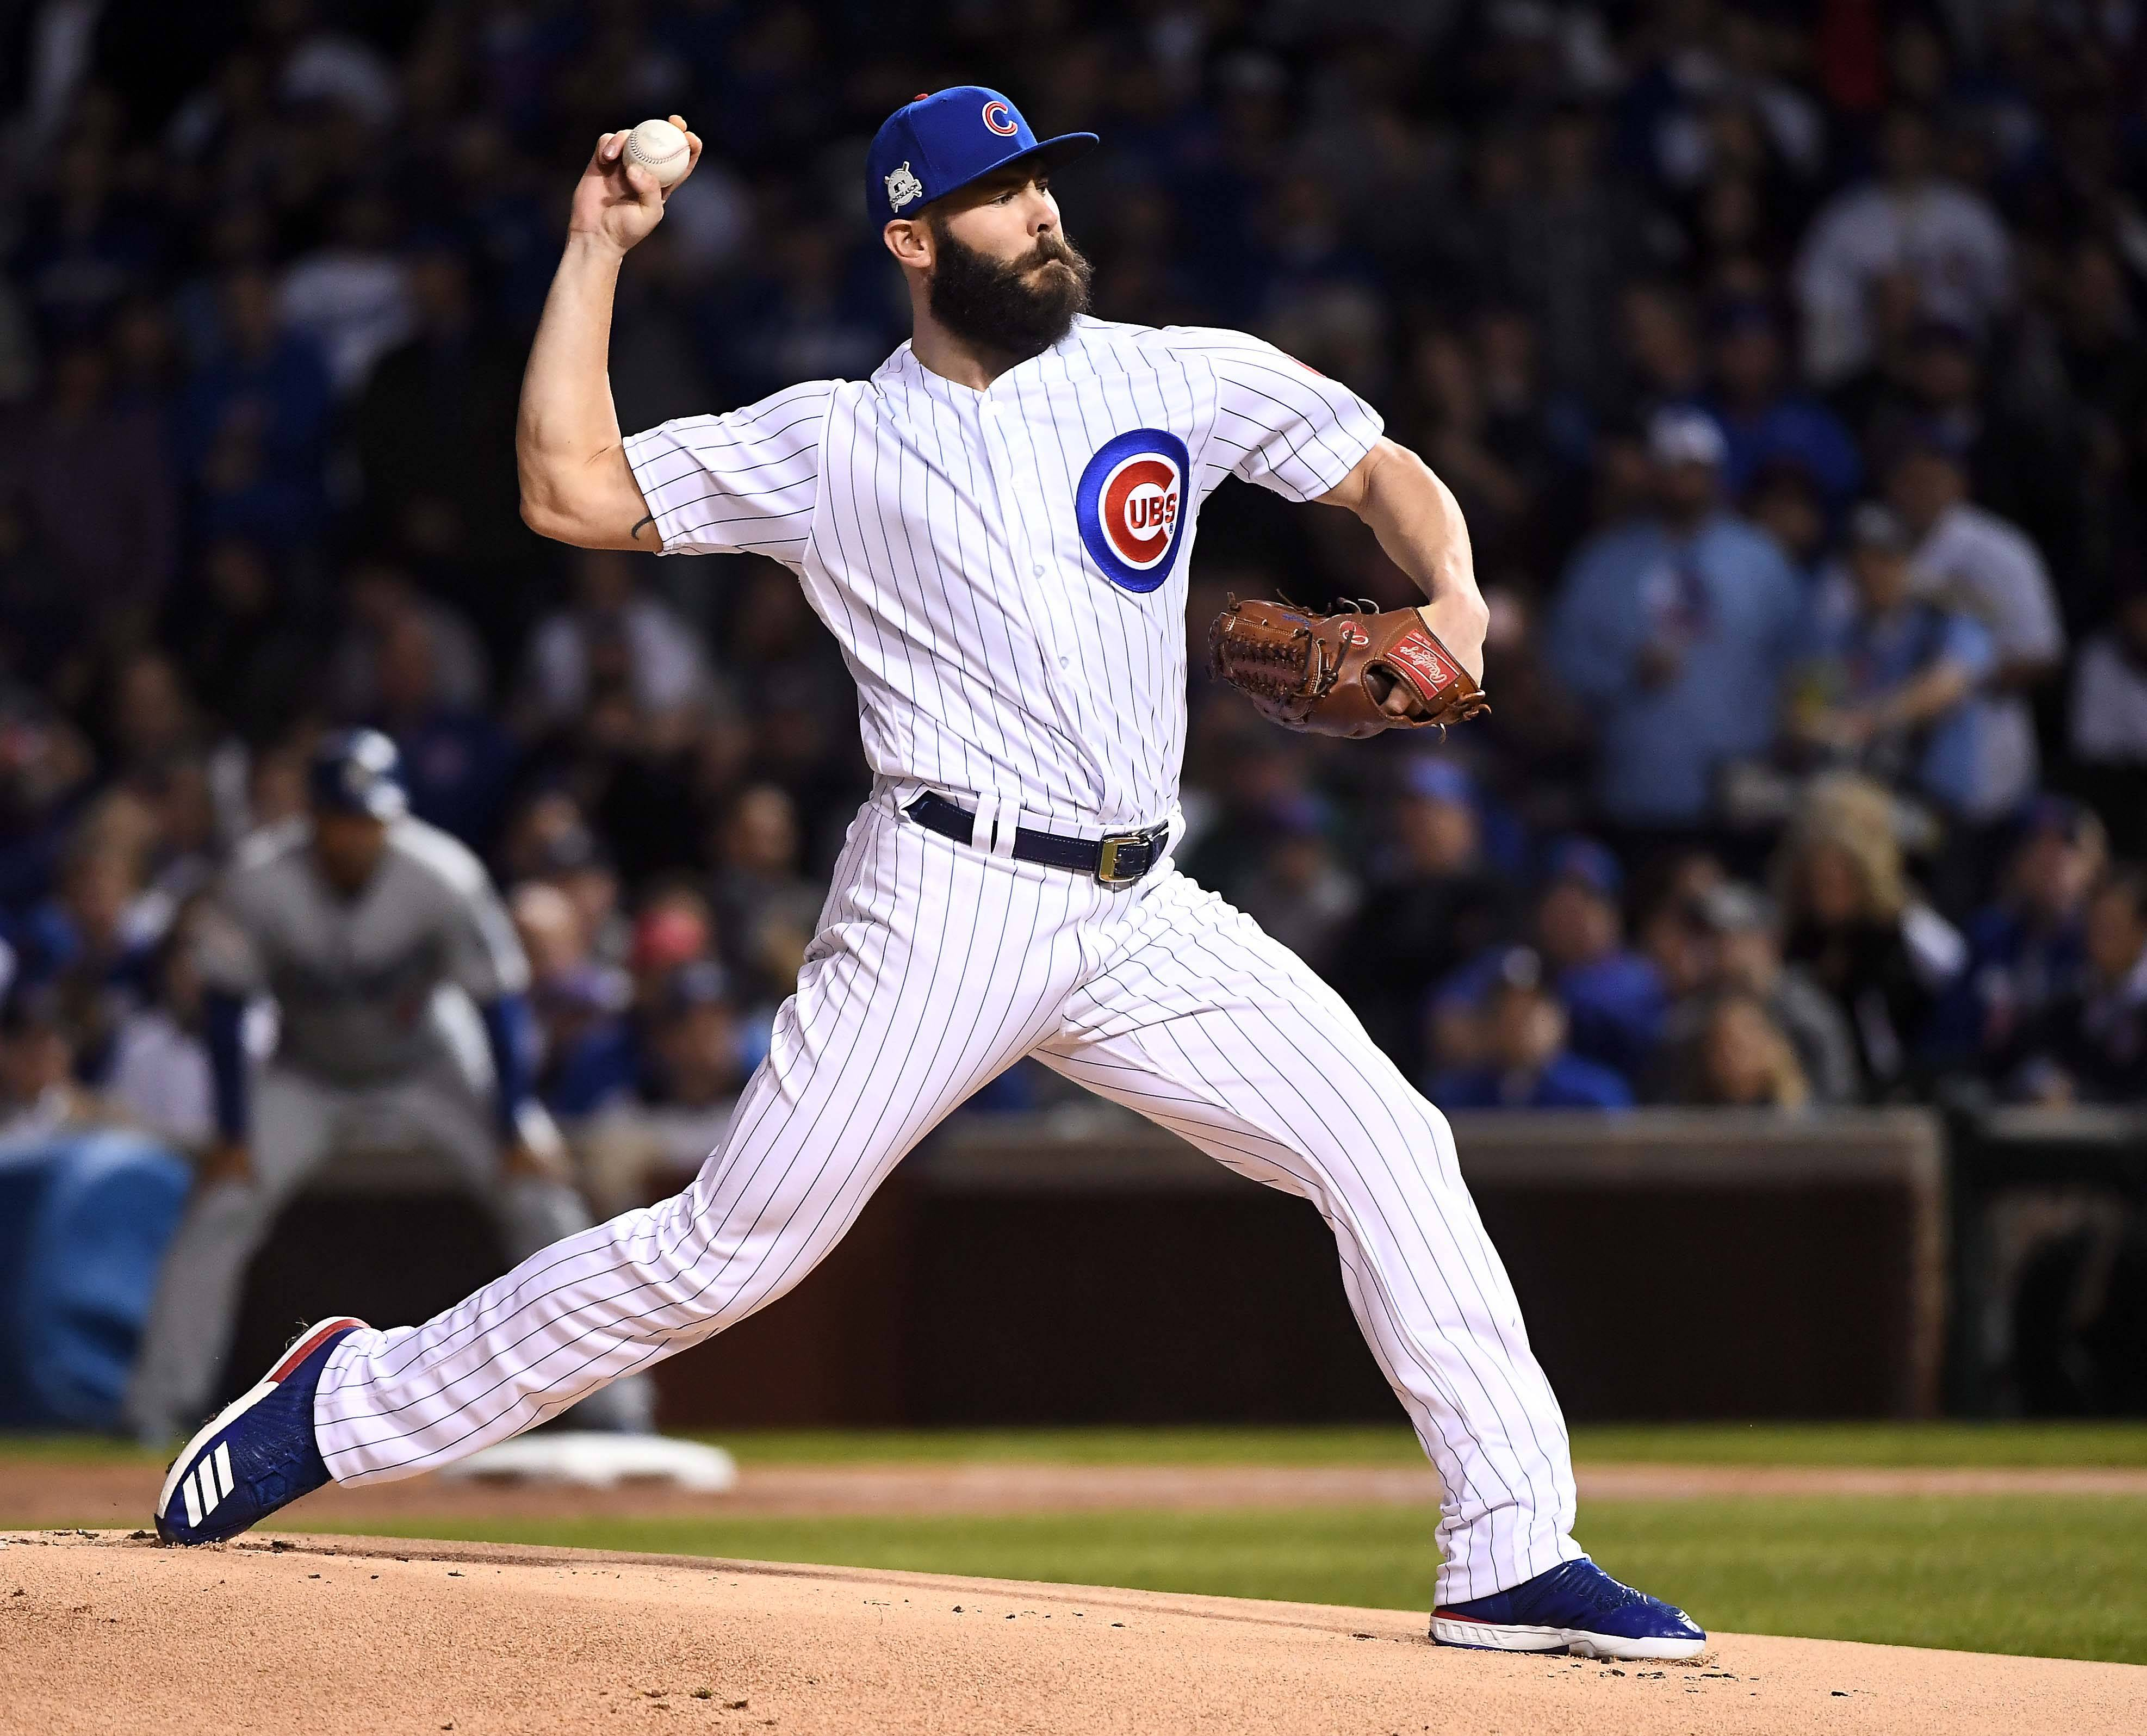 Arrieta shows flashes of old self to help Chicago Cubs